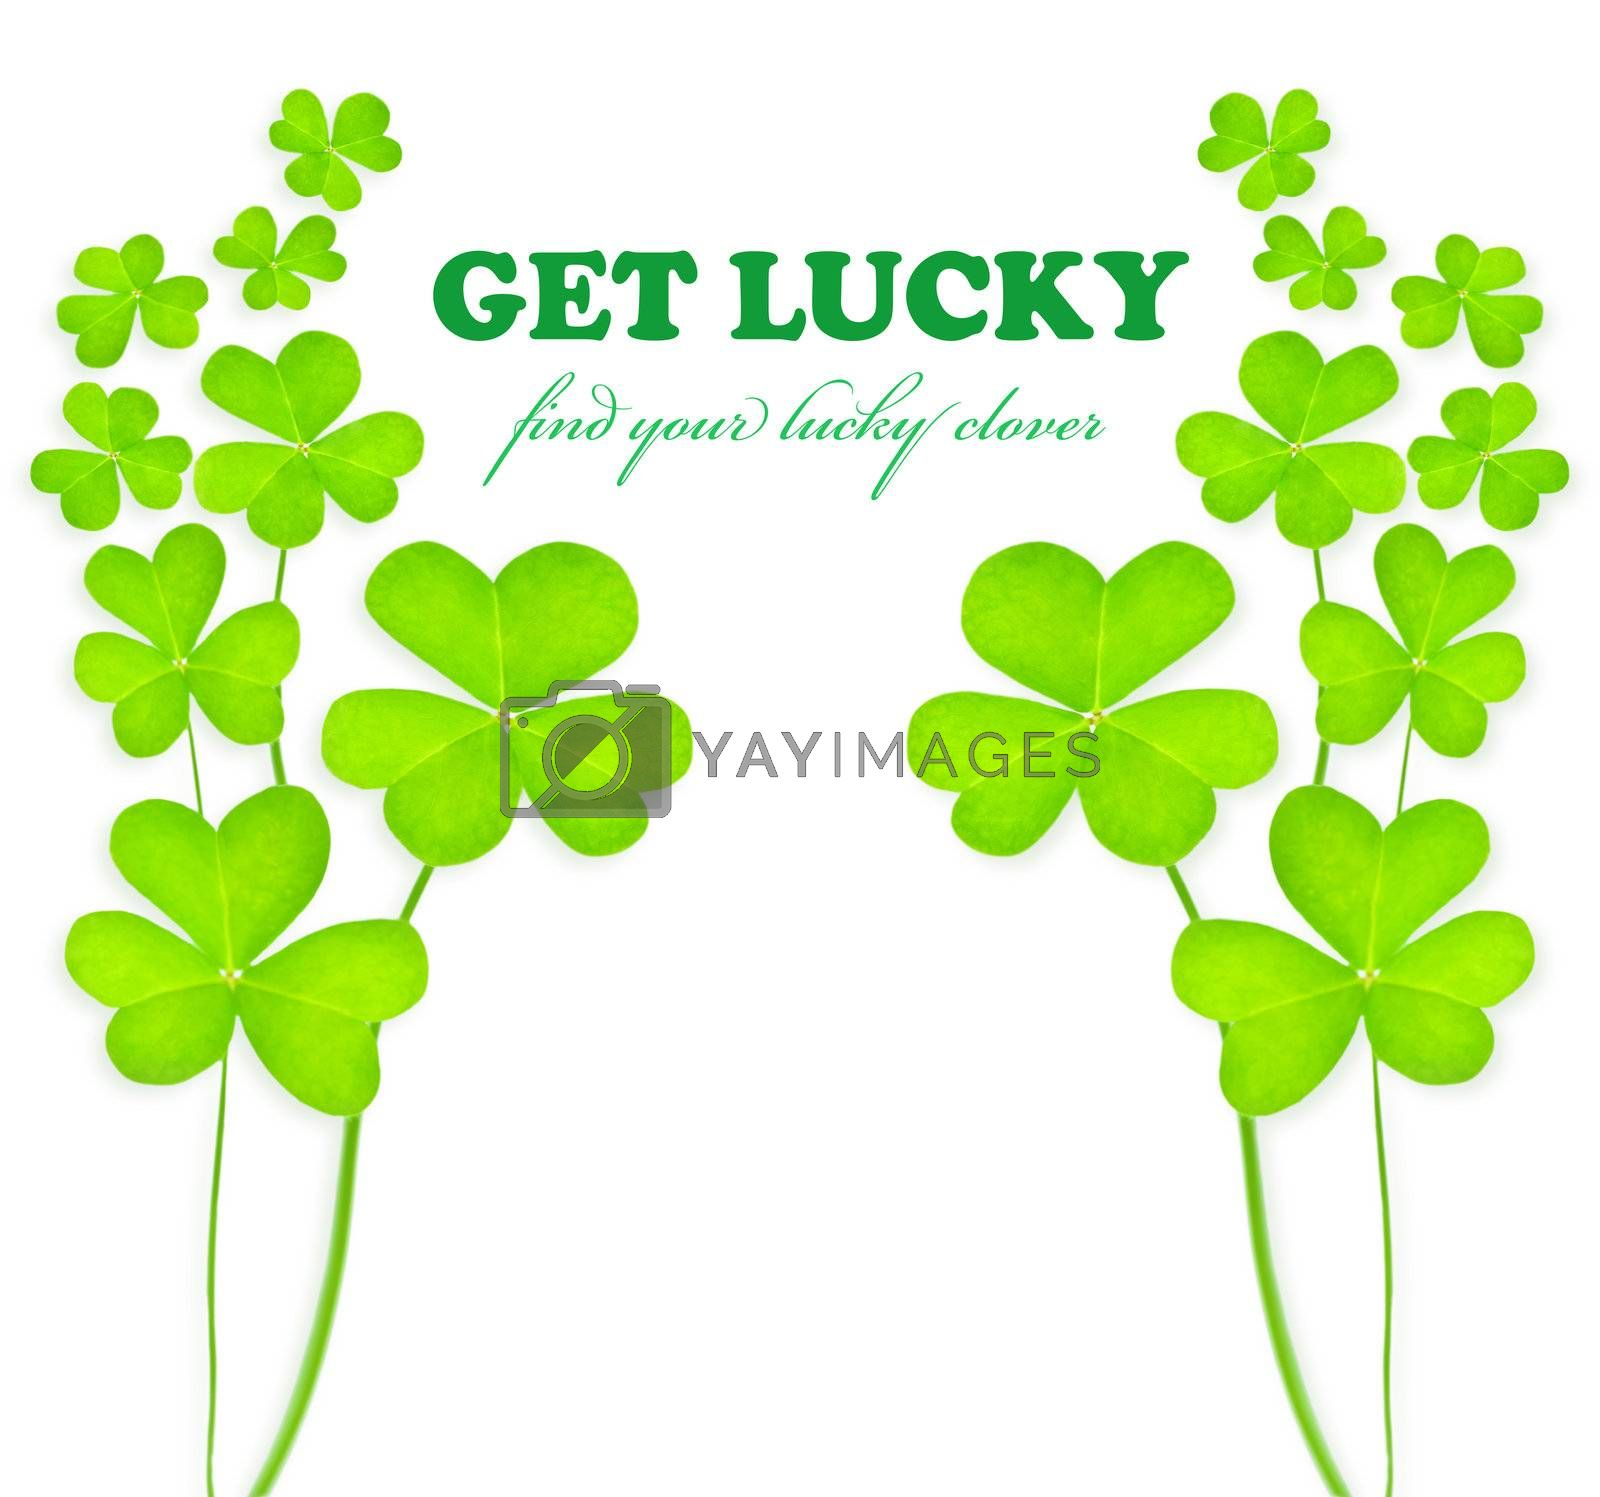 Green clover holiday frame, st.Patrick's day decoration isolated on white background with text space